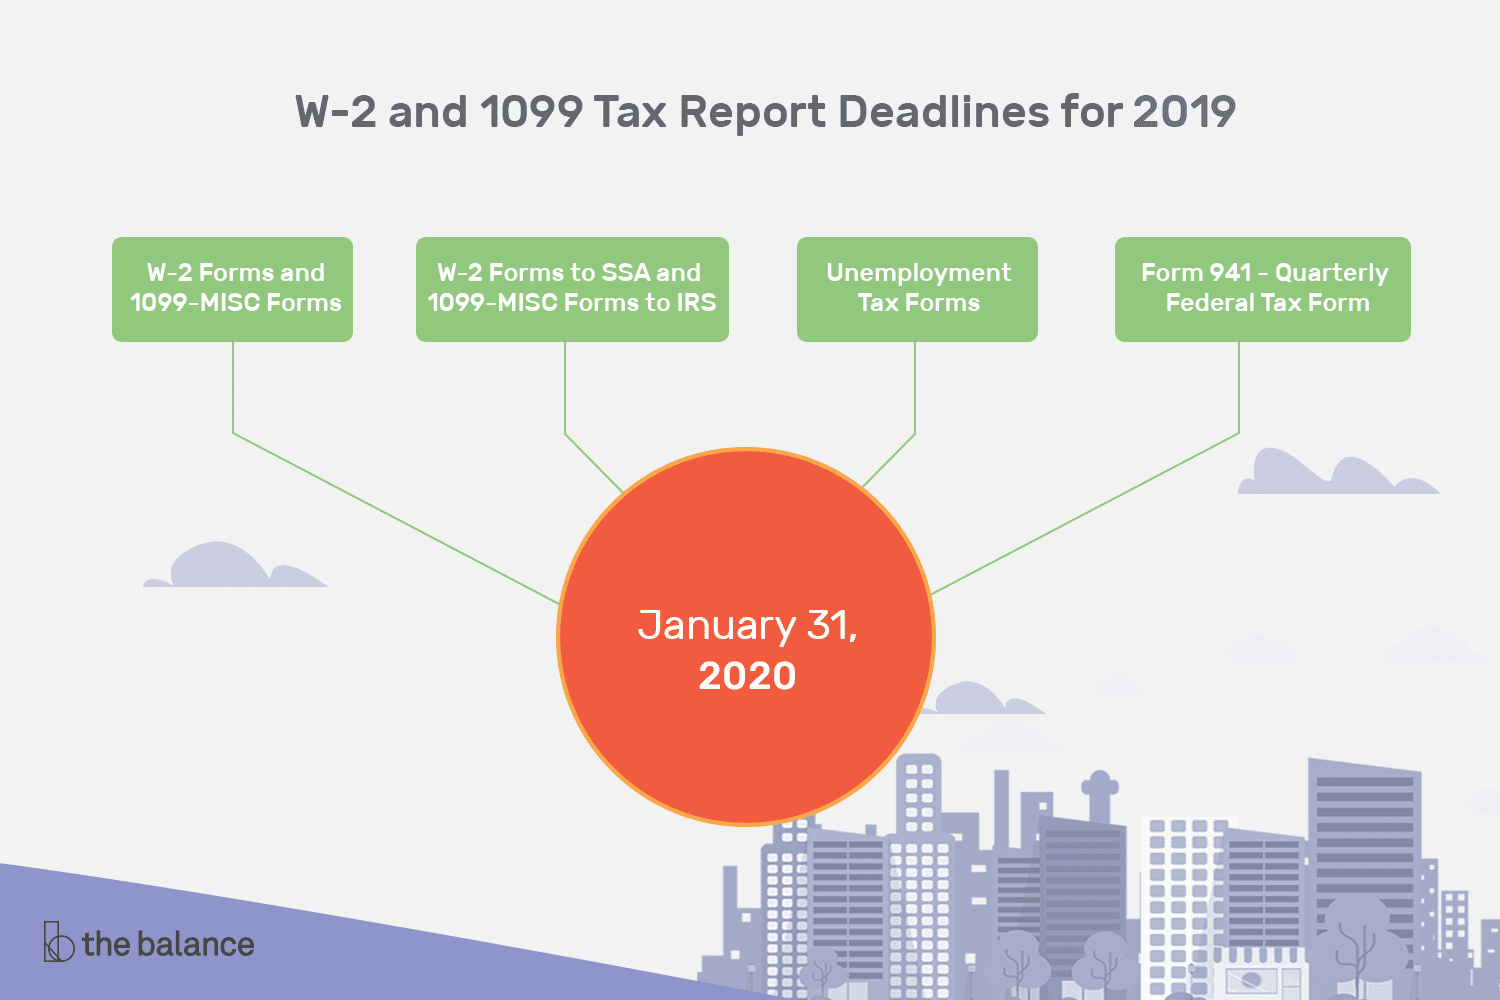 Printable W2 Form 2020.W 2 And 1099 Tax Report Deadlines For 2019 Taxes